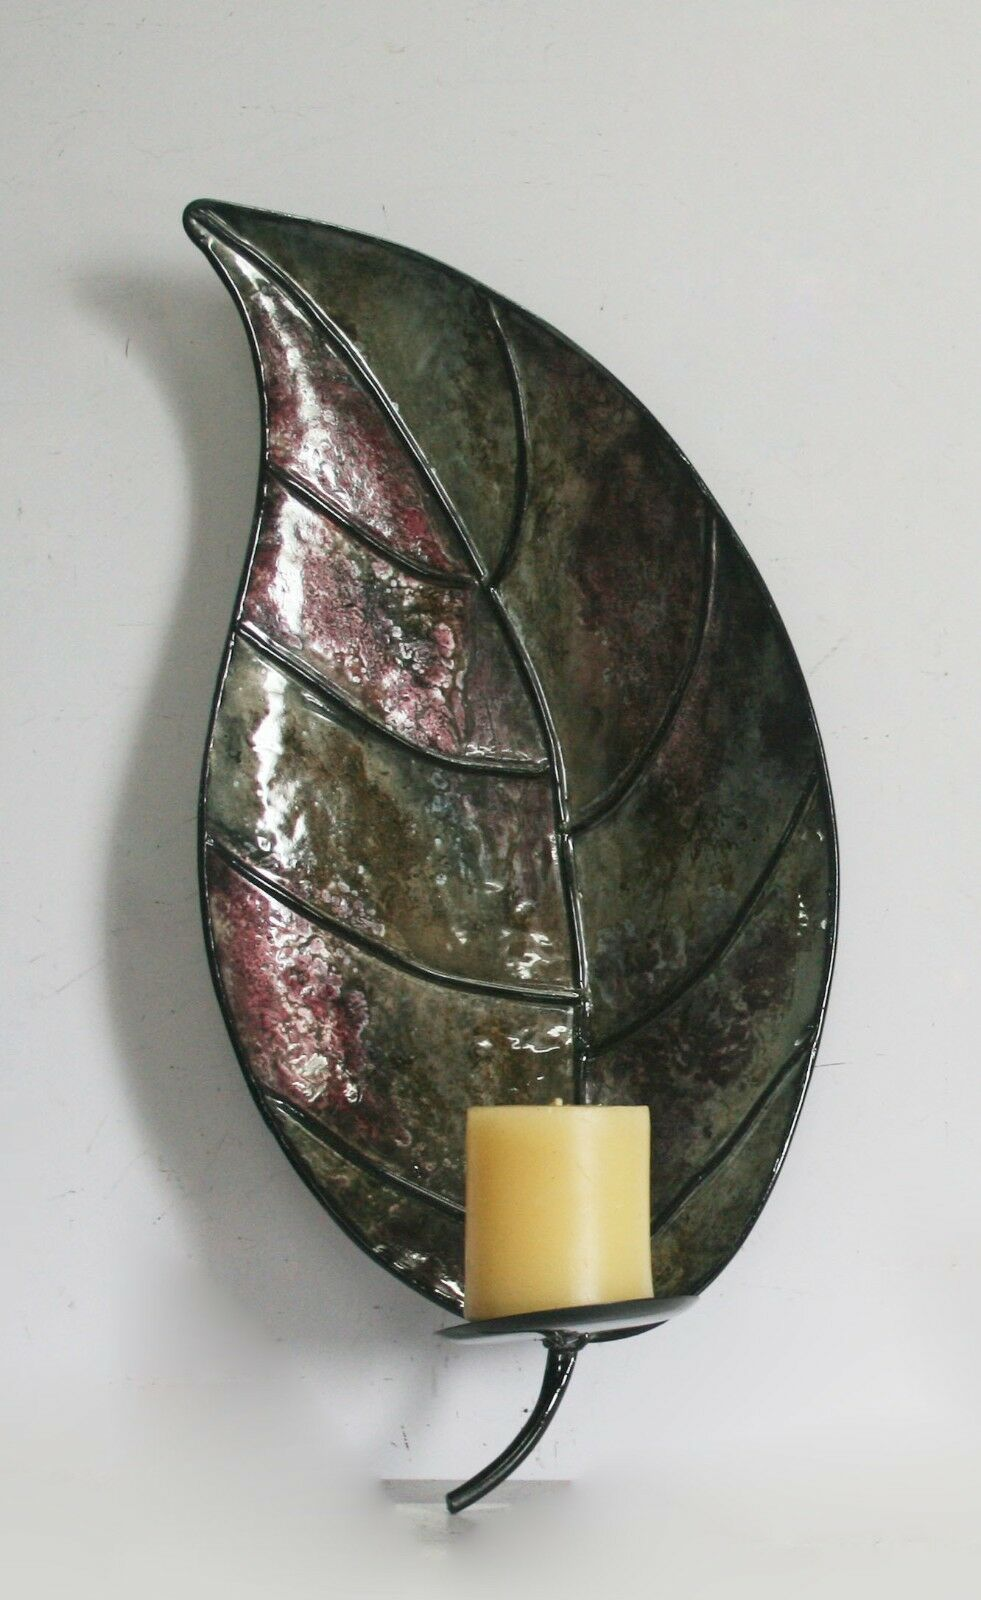 METAL LEAF WALL MOUNTED CANDLE HOLDER SCONCE FOR MODERN HOME DECOR IN GREEN